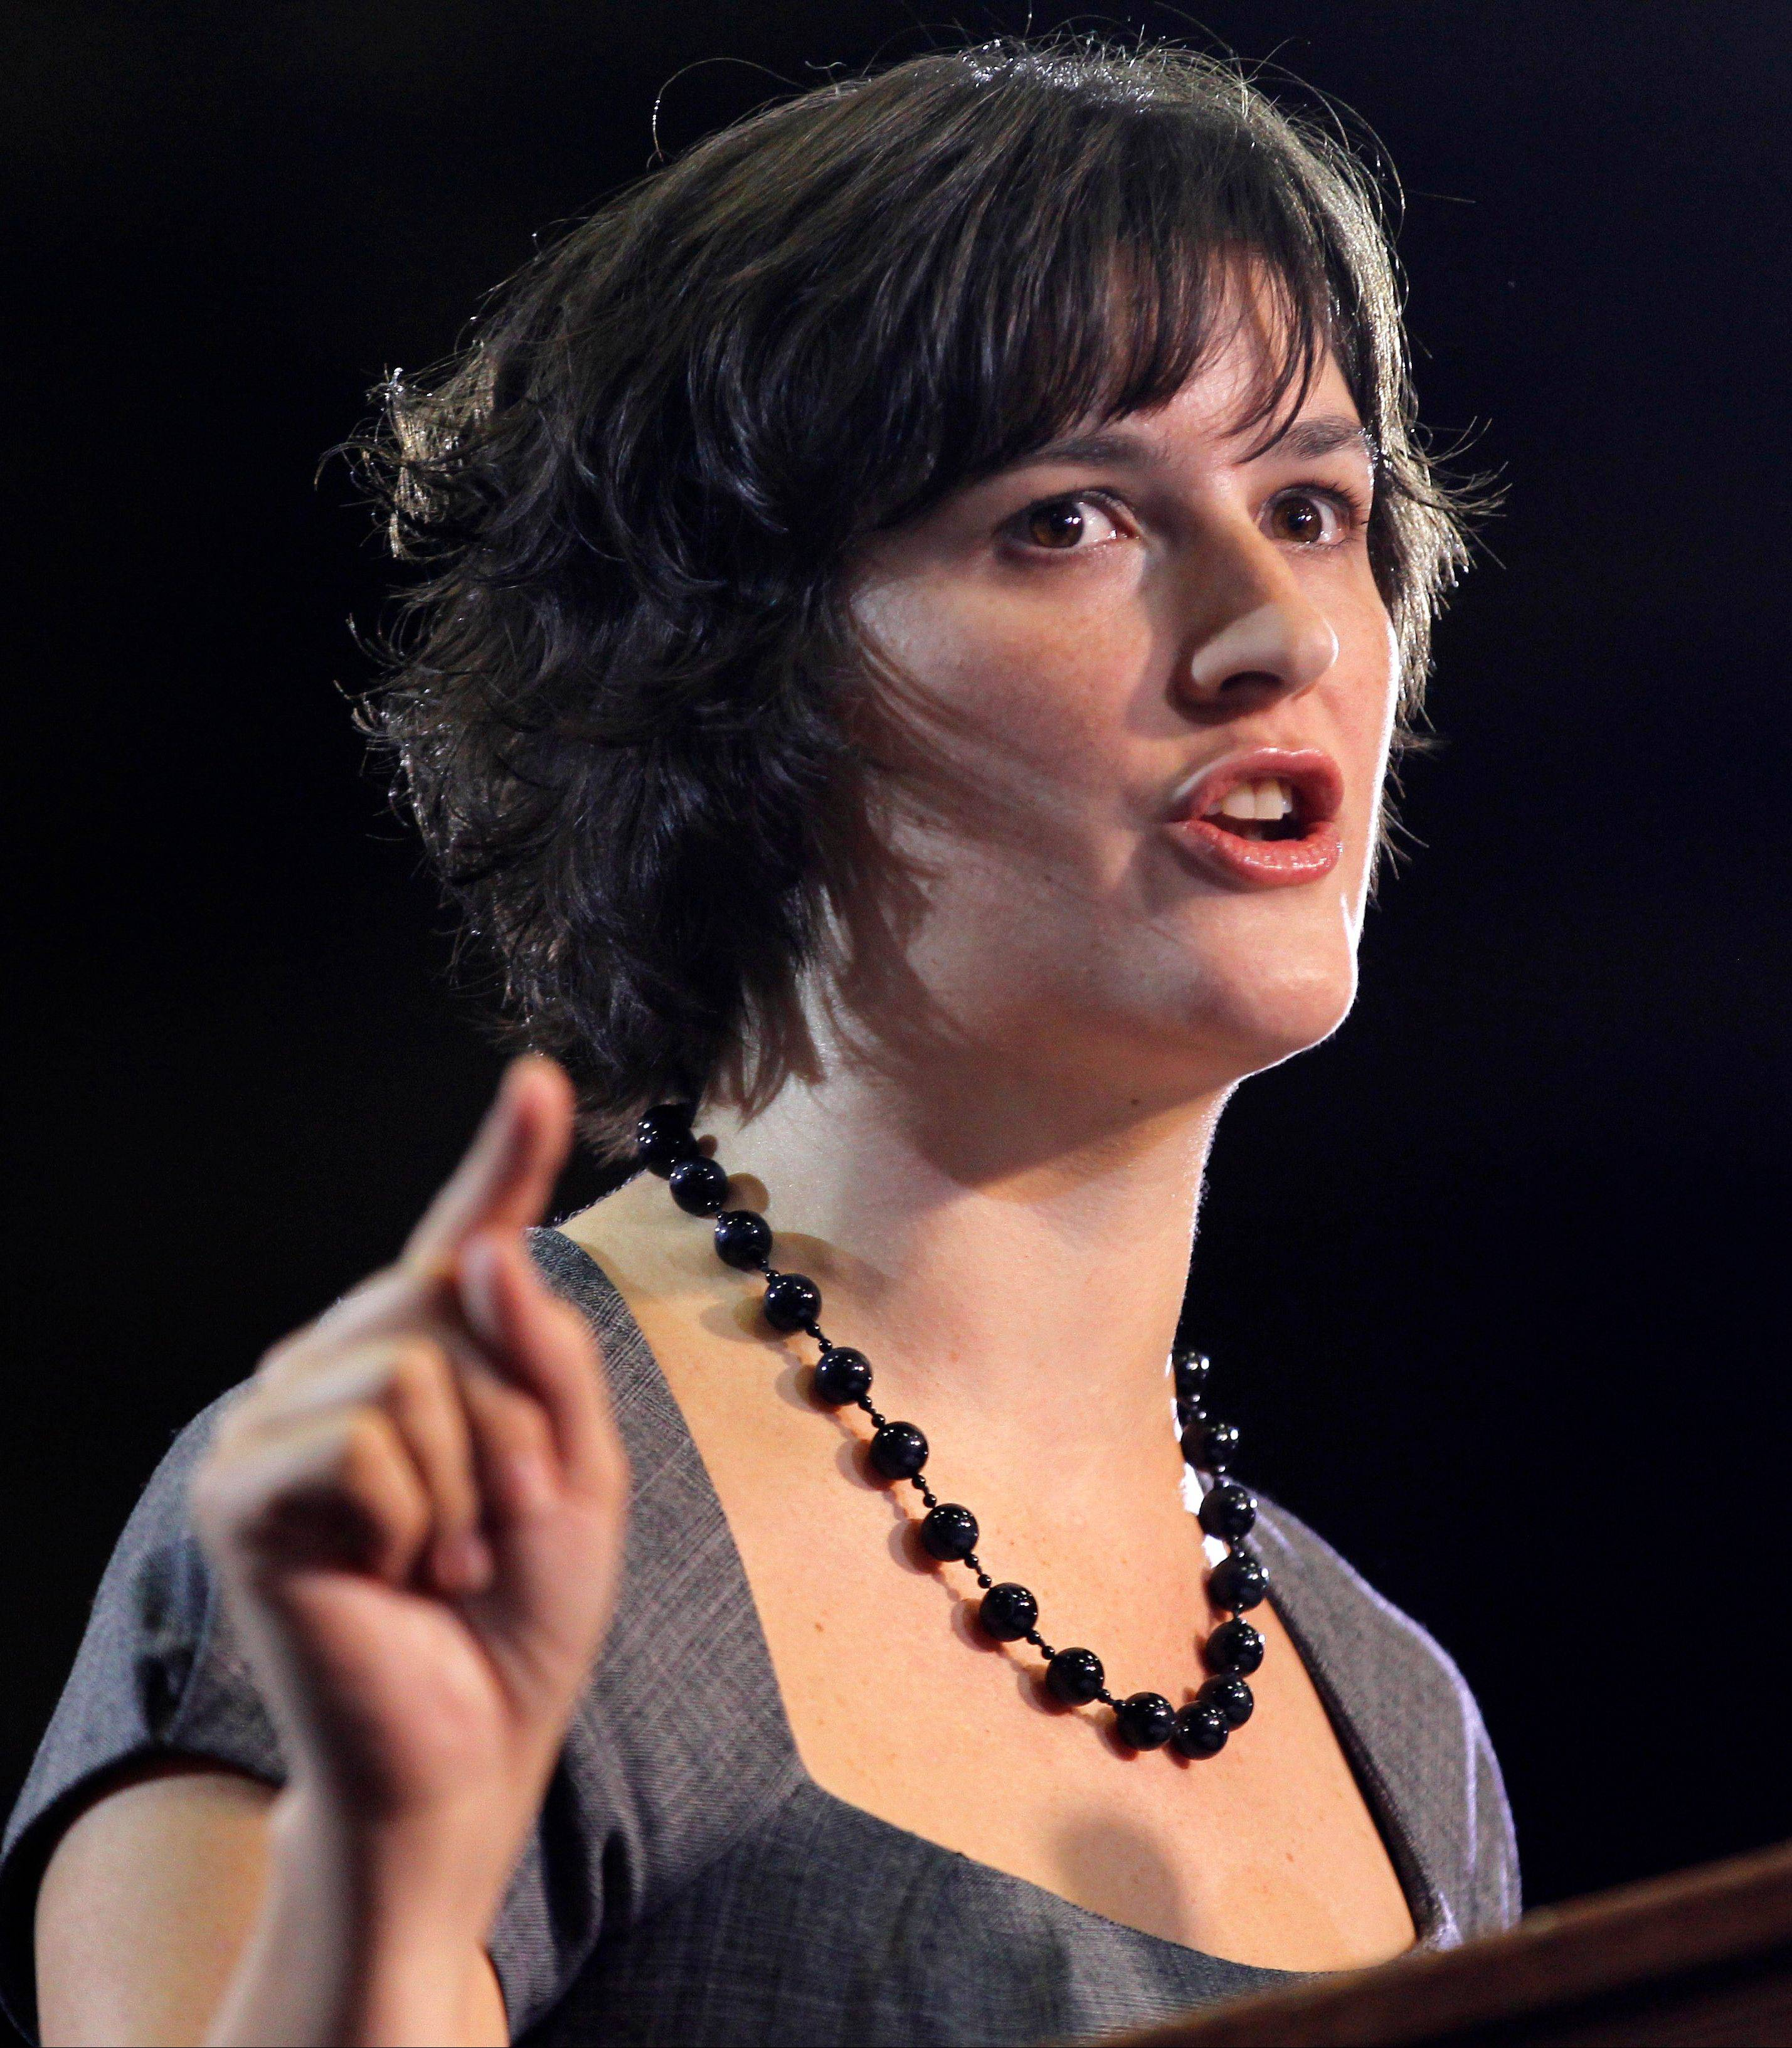 Sandra Fluke introduces President Barack Obama at a campaign event in Denver Wednesday. Fluke is a law student who gained notoriety when talk show host Rush Limbaugh spoke disparagingly of her testimony before Congress on the issue of contraception and insurance coverage.